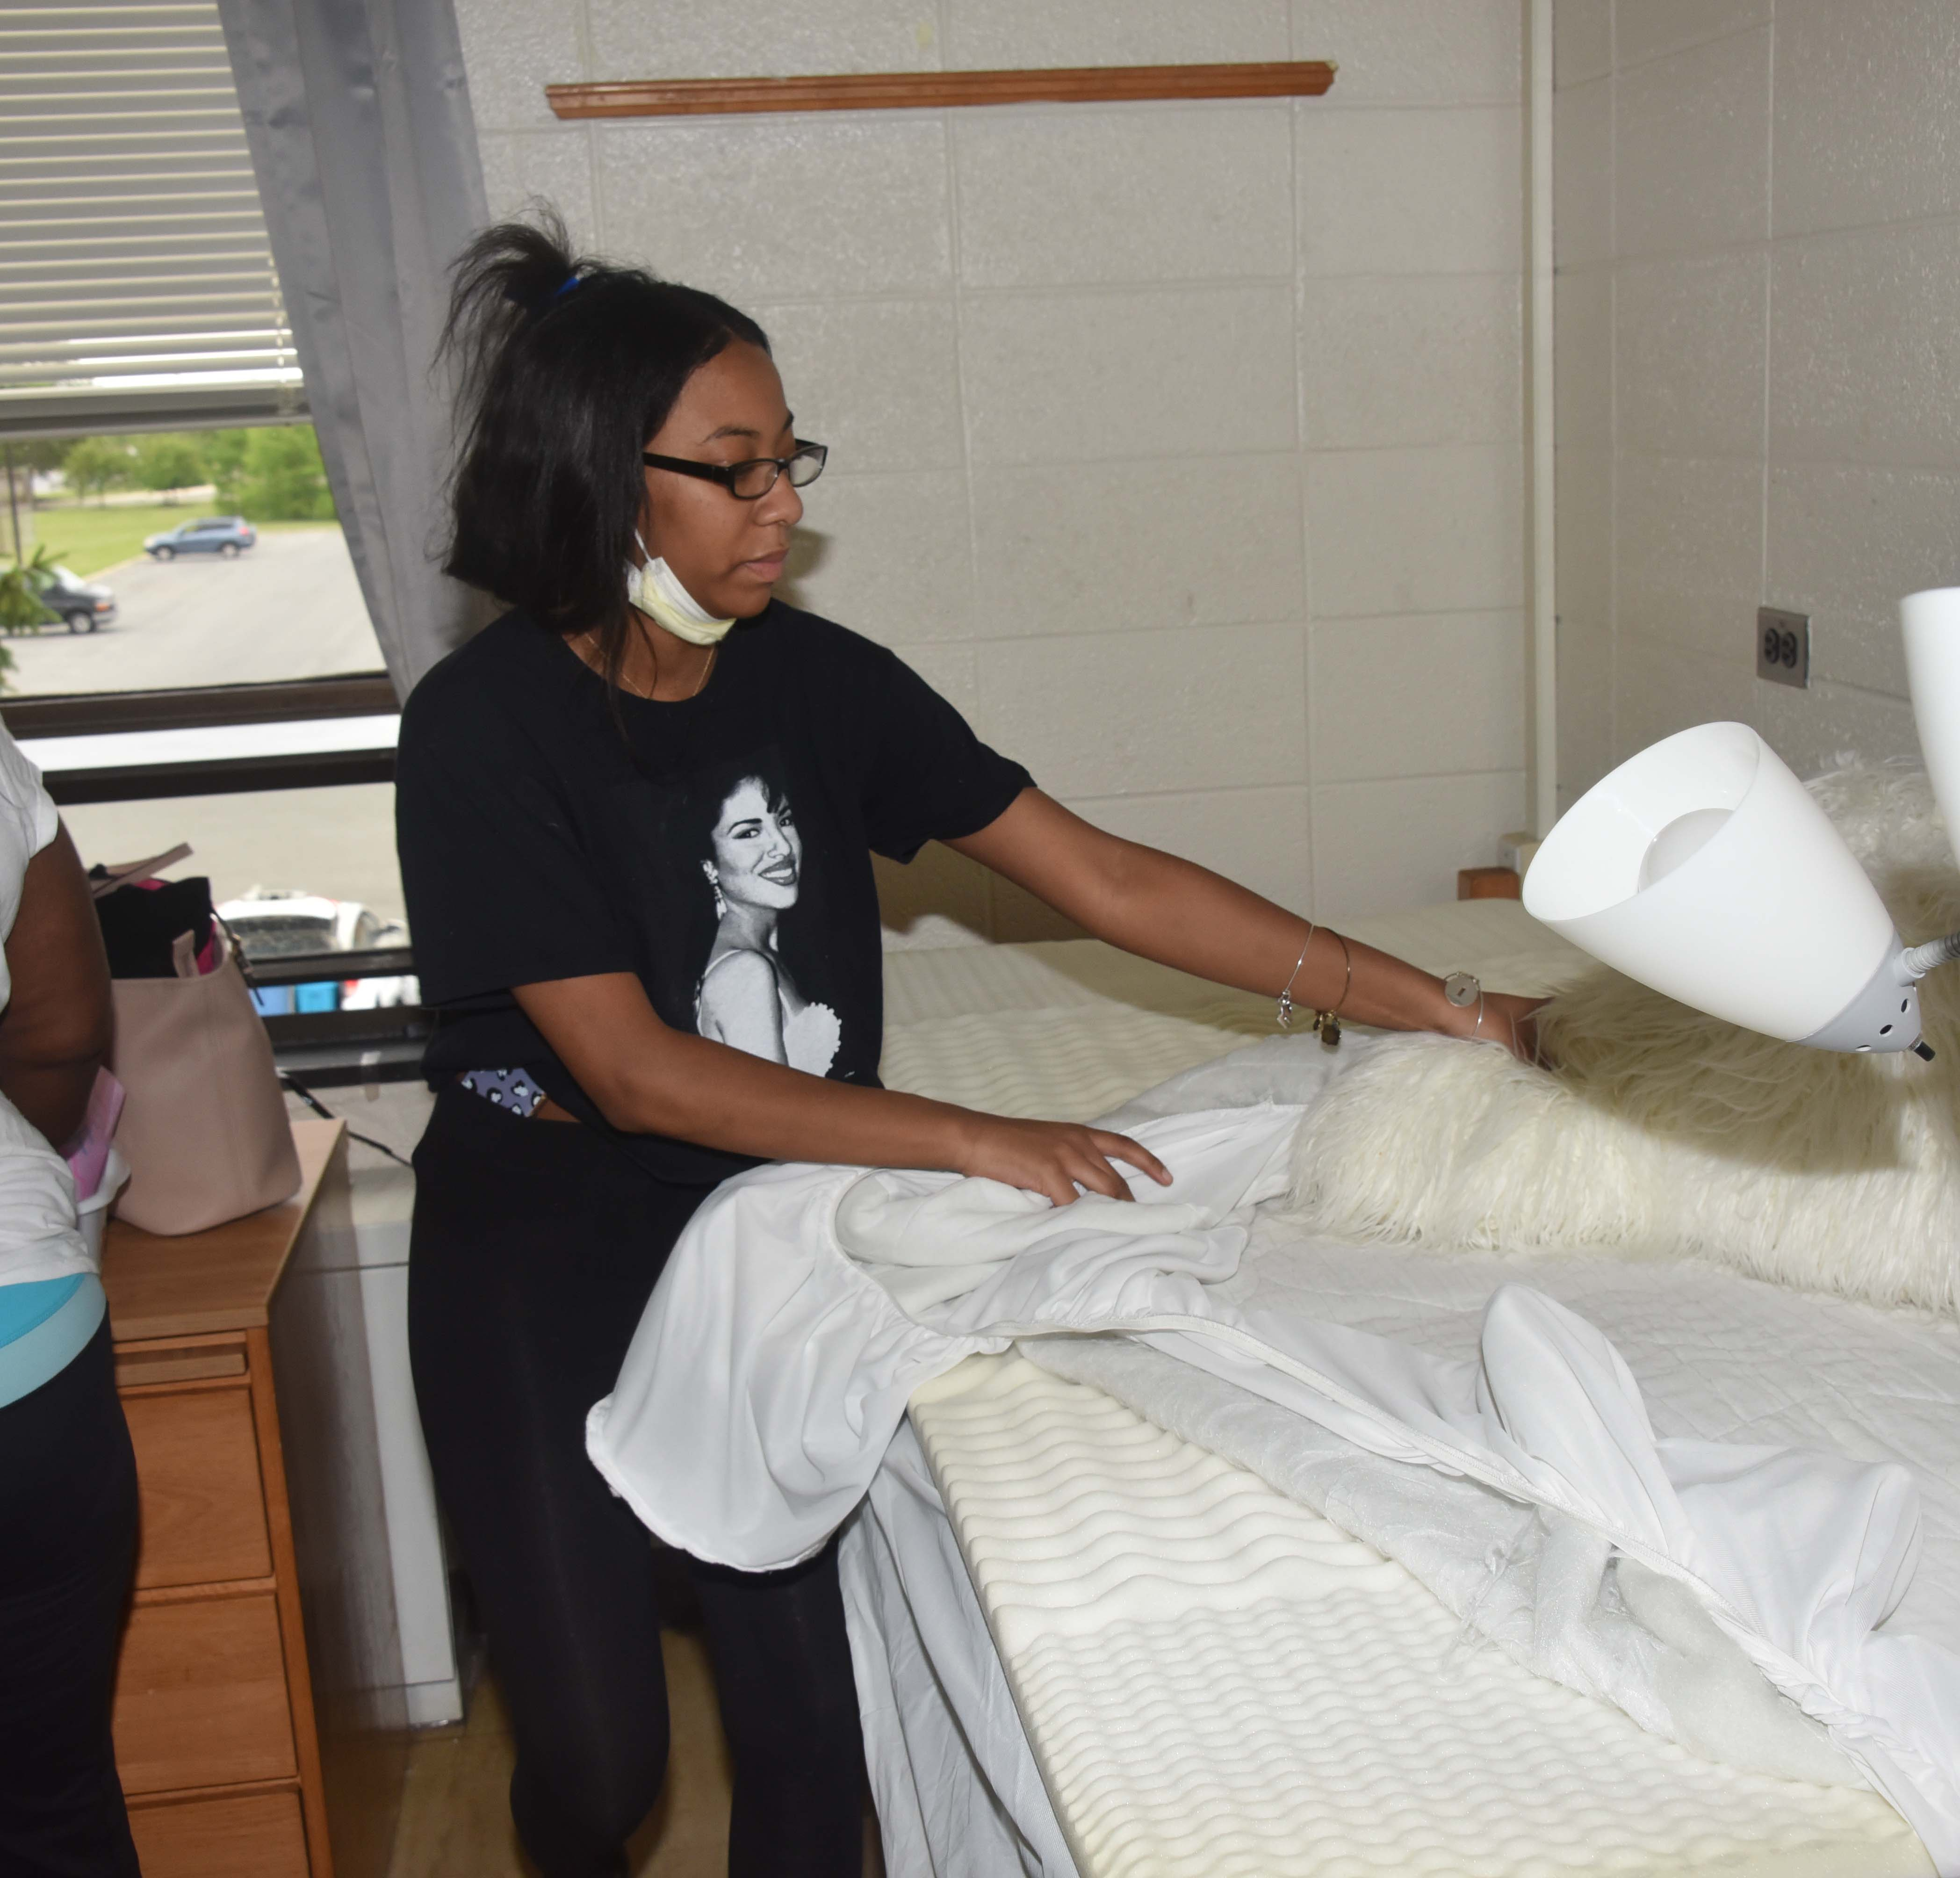 Kenisa Hawkes was not about to leave behind her personal bedding.